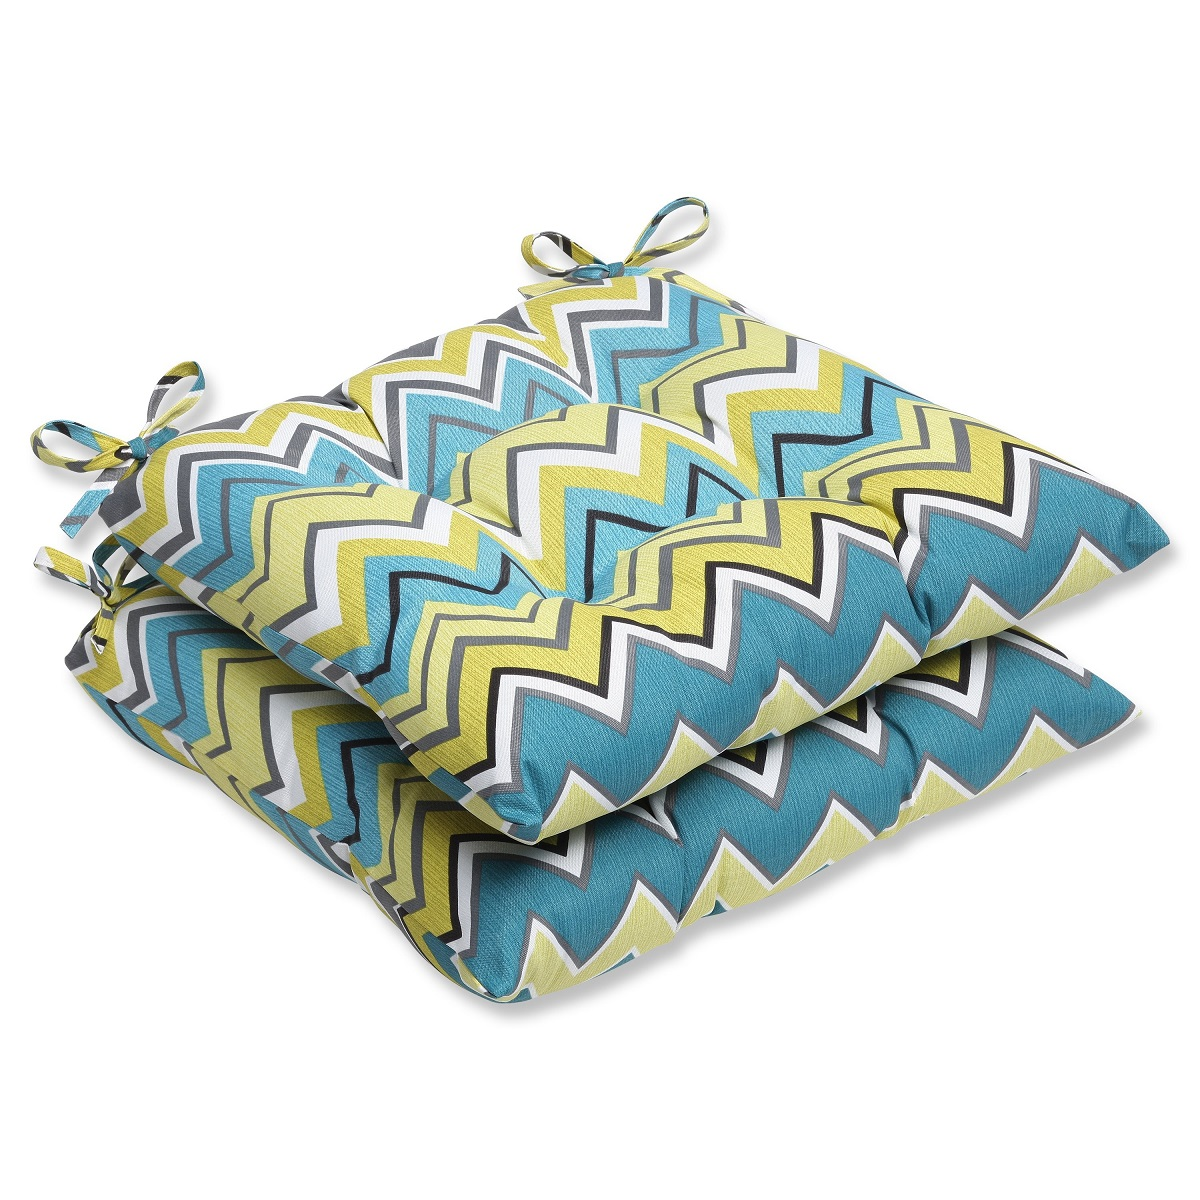 Set of 2 Chevron Surtido Lime Green & Turquoise Blue Outdoor Patio Wrought Iron Chair Cushions 19""